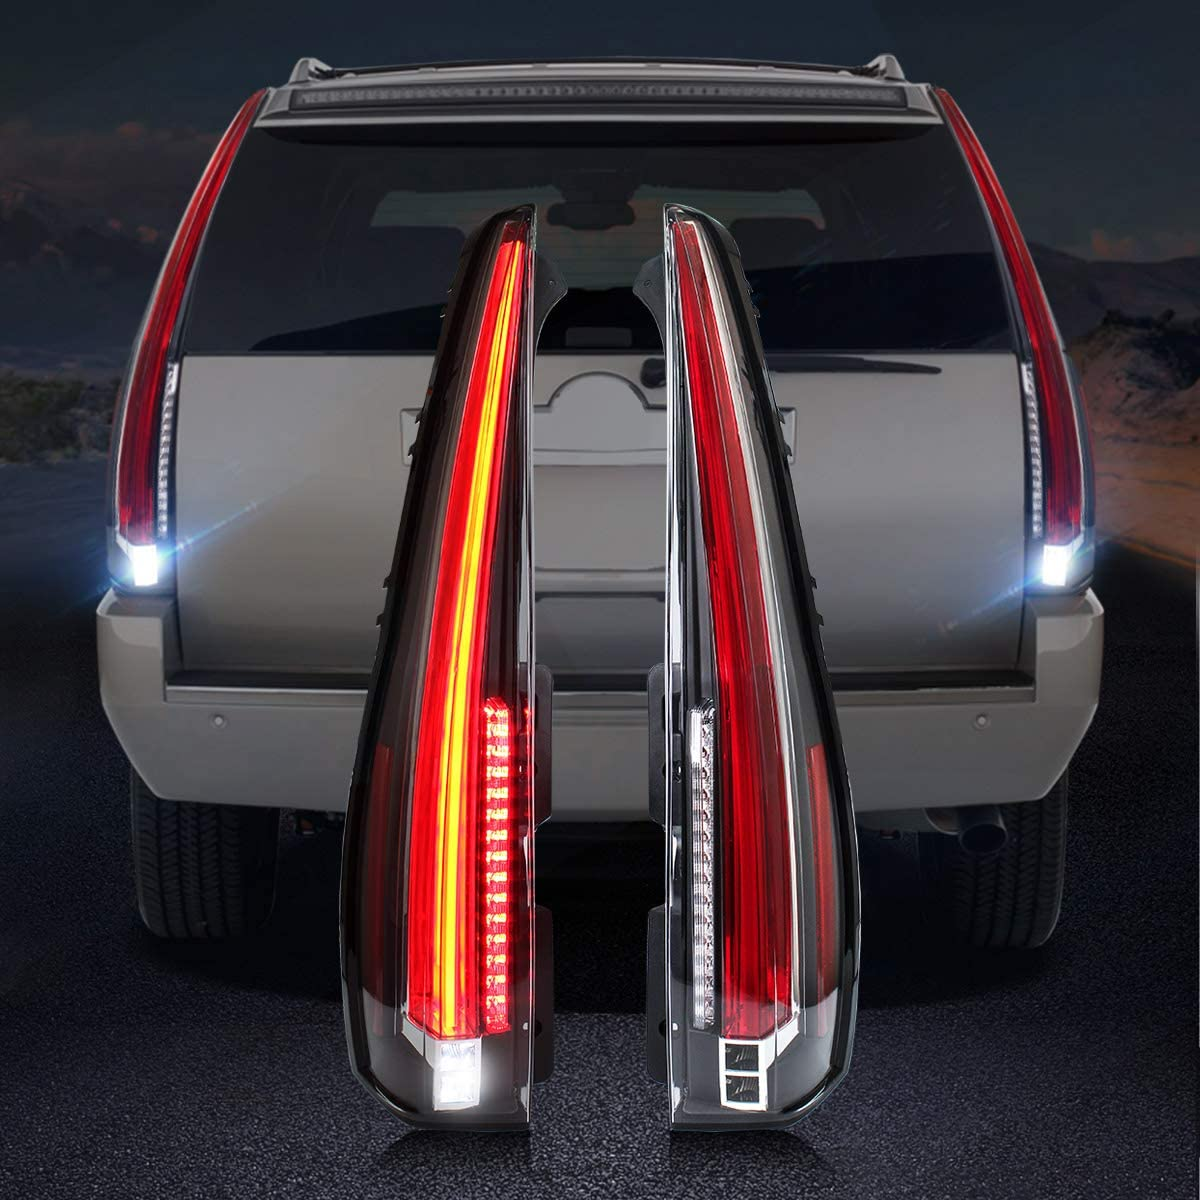 YAB-KLD-0156C YUANZHENG Full LED Tail Lights Assembly for Red /& Clear Cadillac Escalade 3rd Gen SUV 2007 2008 2009 2010 2011 2012 2013 2014 Rear Lamp with Red Turn Signal